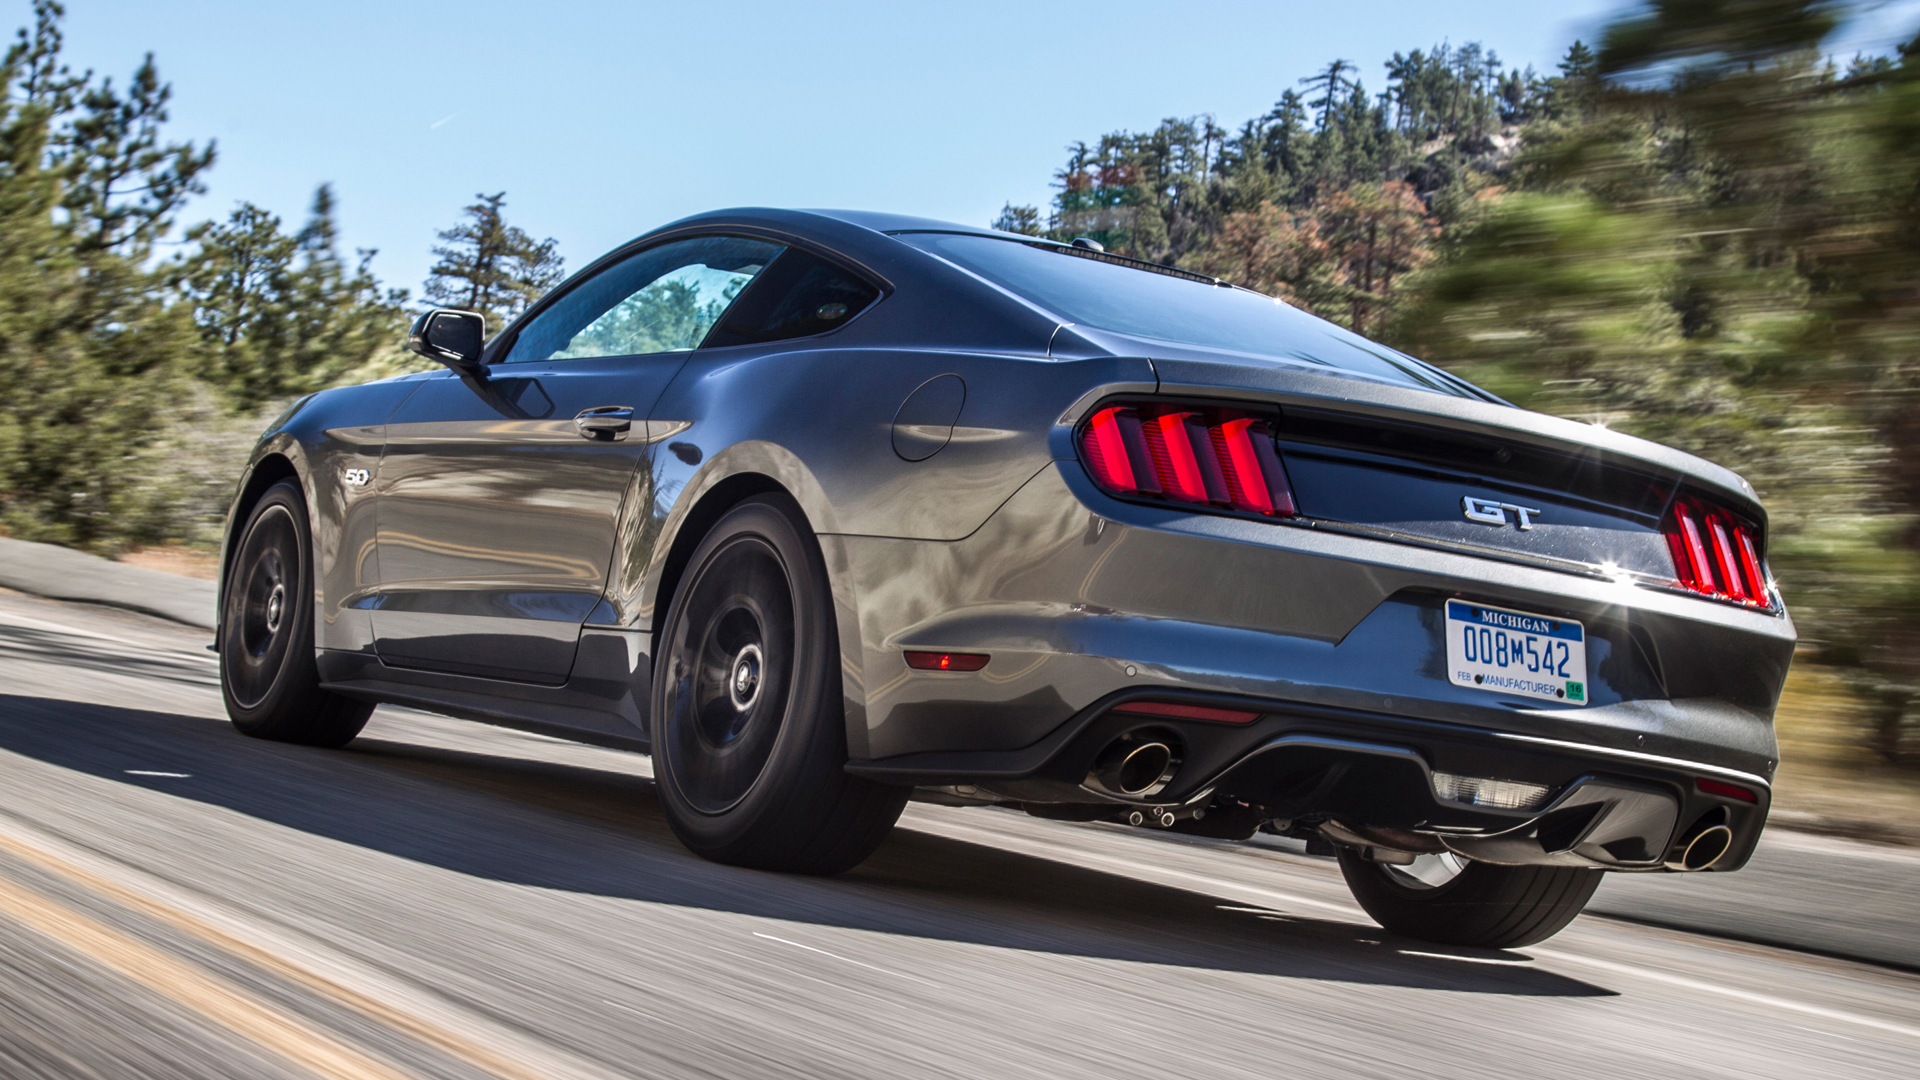 cool ford mustang gt 2015 wallpapers ford mustang gt 2015 photos ford 1920x1080